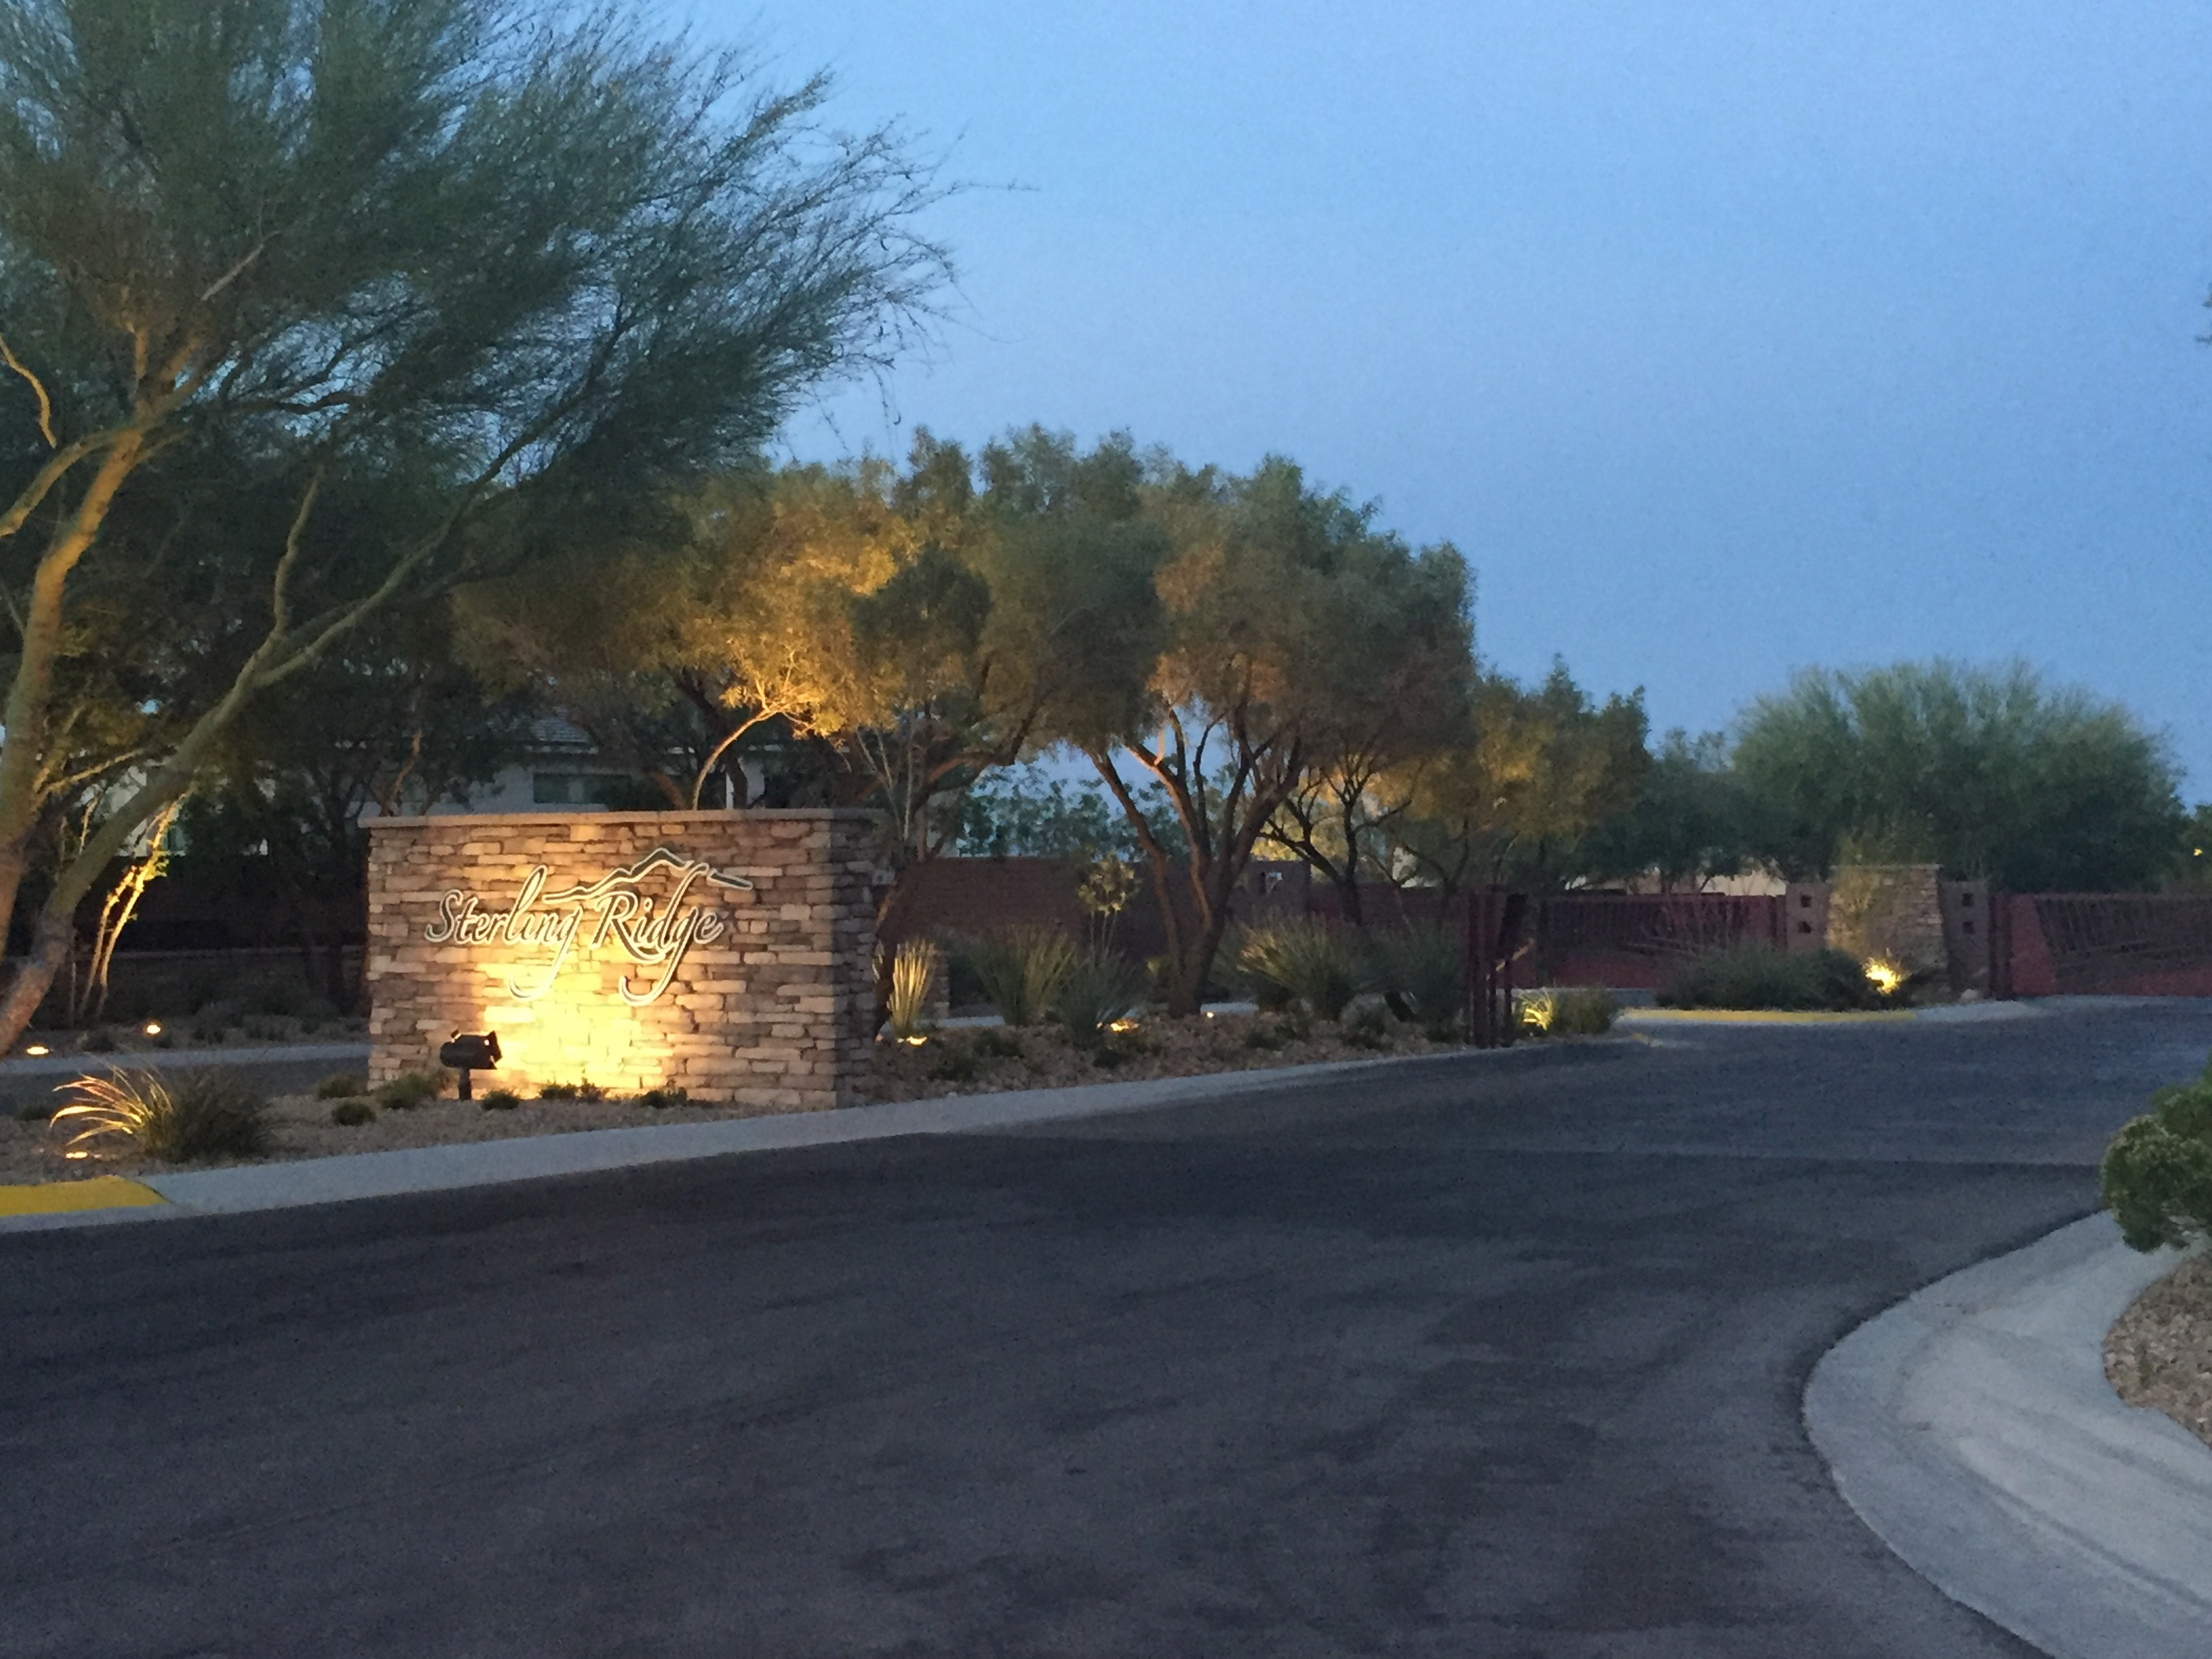 Sterling Ridge - A Las Vegas Luxury Home Community